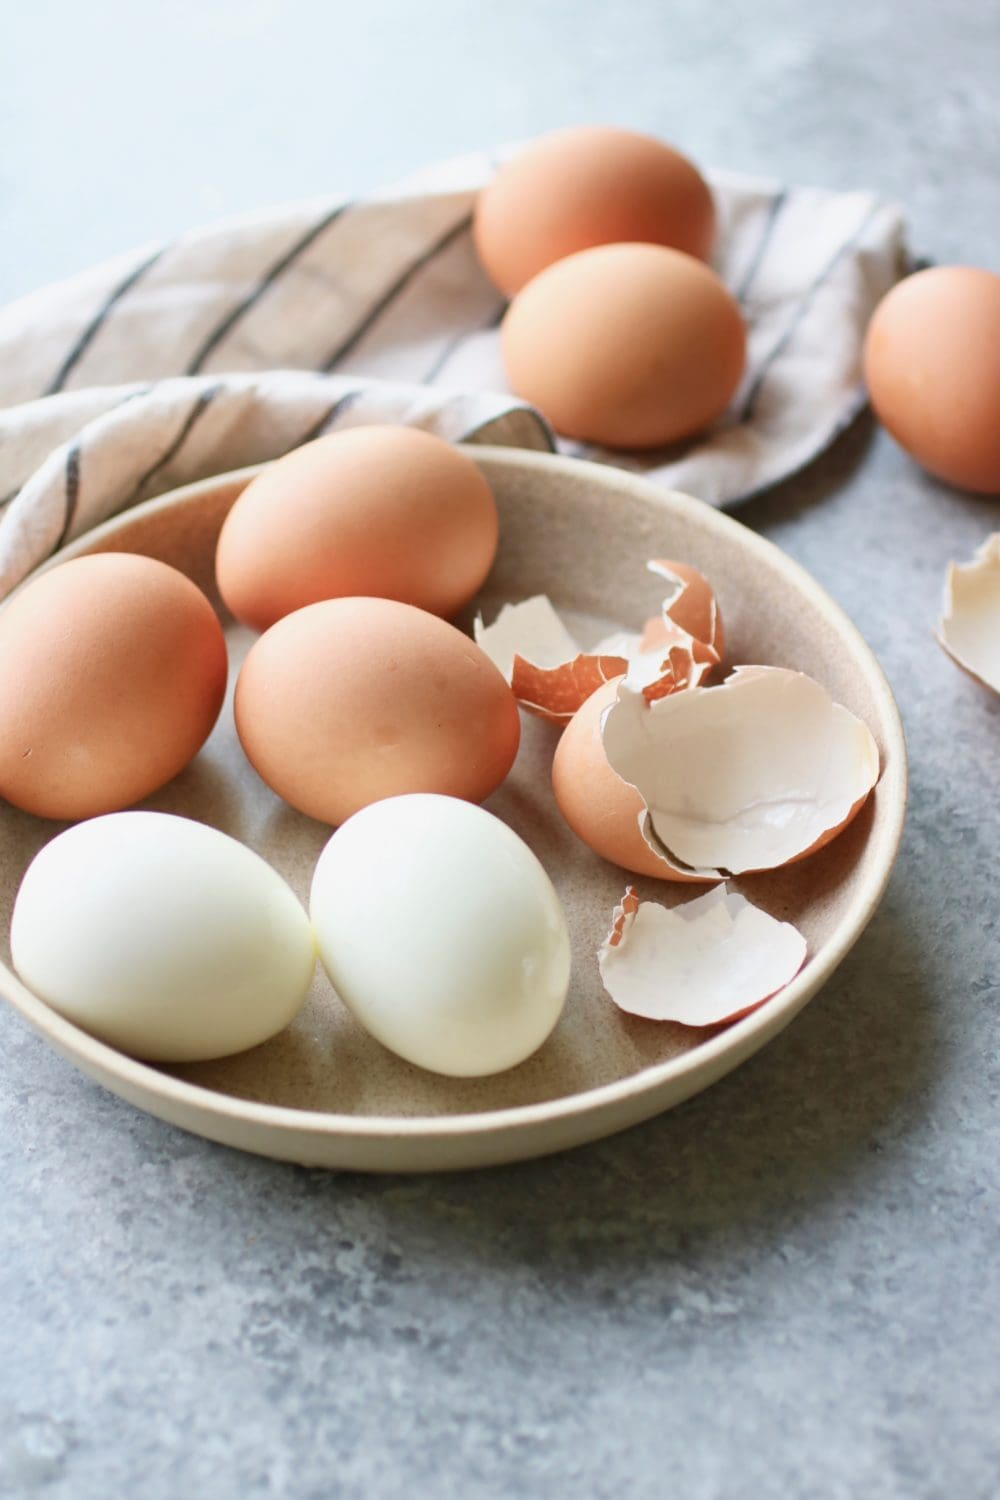 Freshly hard-boiled eggs with easy-peel shells in a shallow bowl